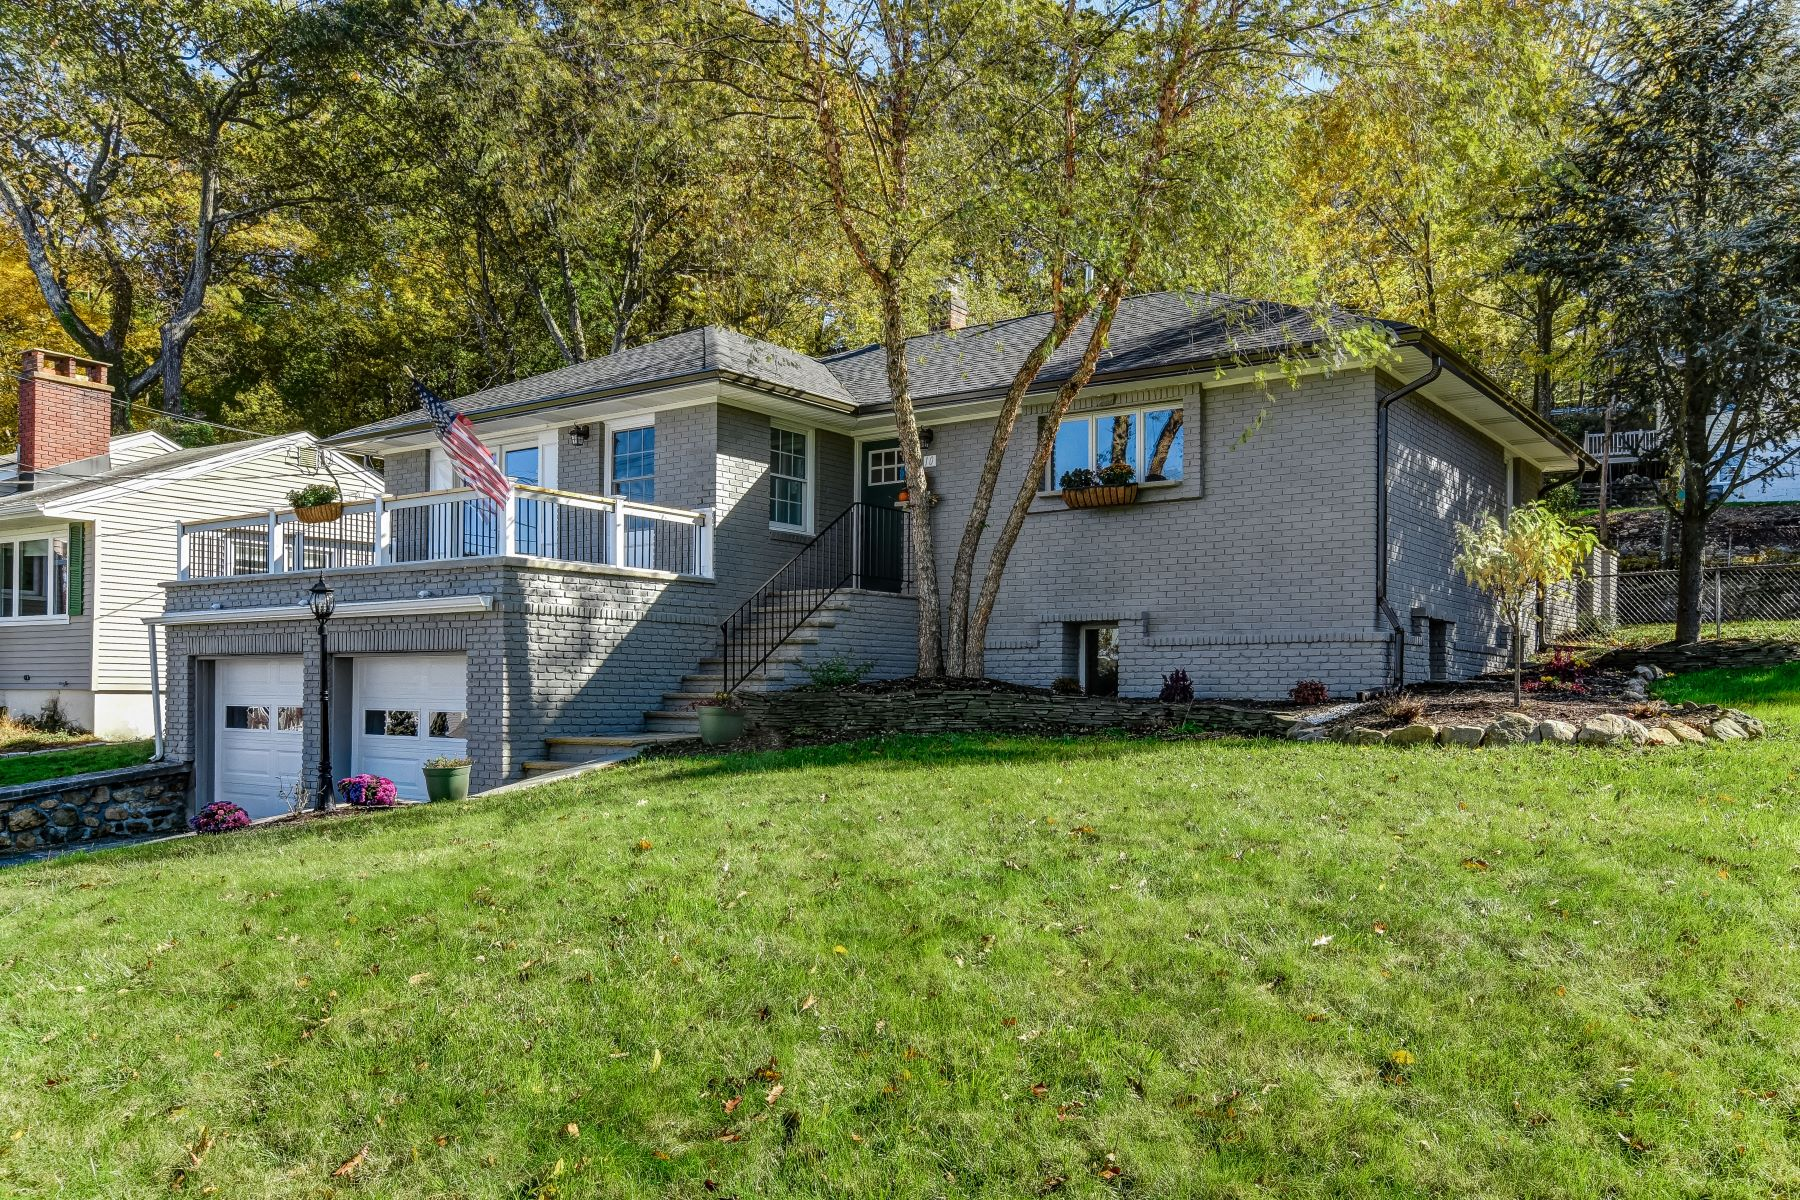 Single Family Home for Sale at Renovated Ranch! 10 Hillard Road, Mount Arlington, New Jersey 07856 United States